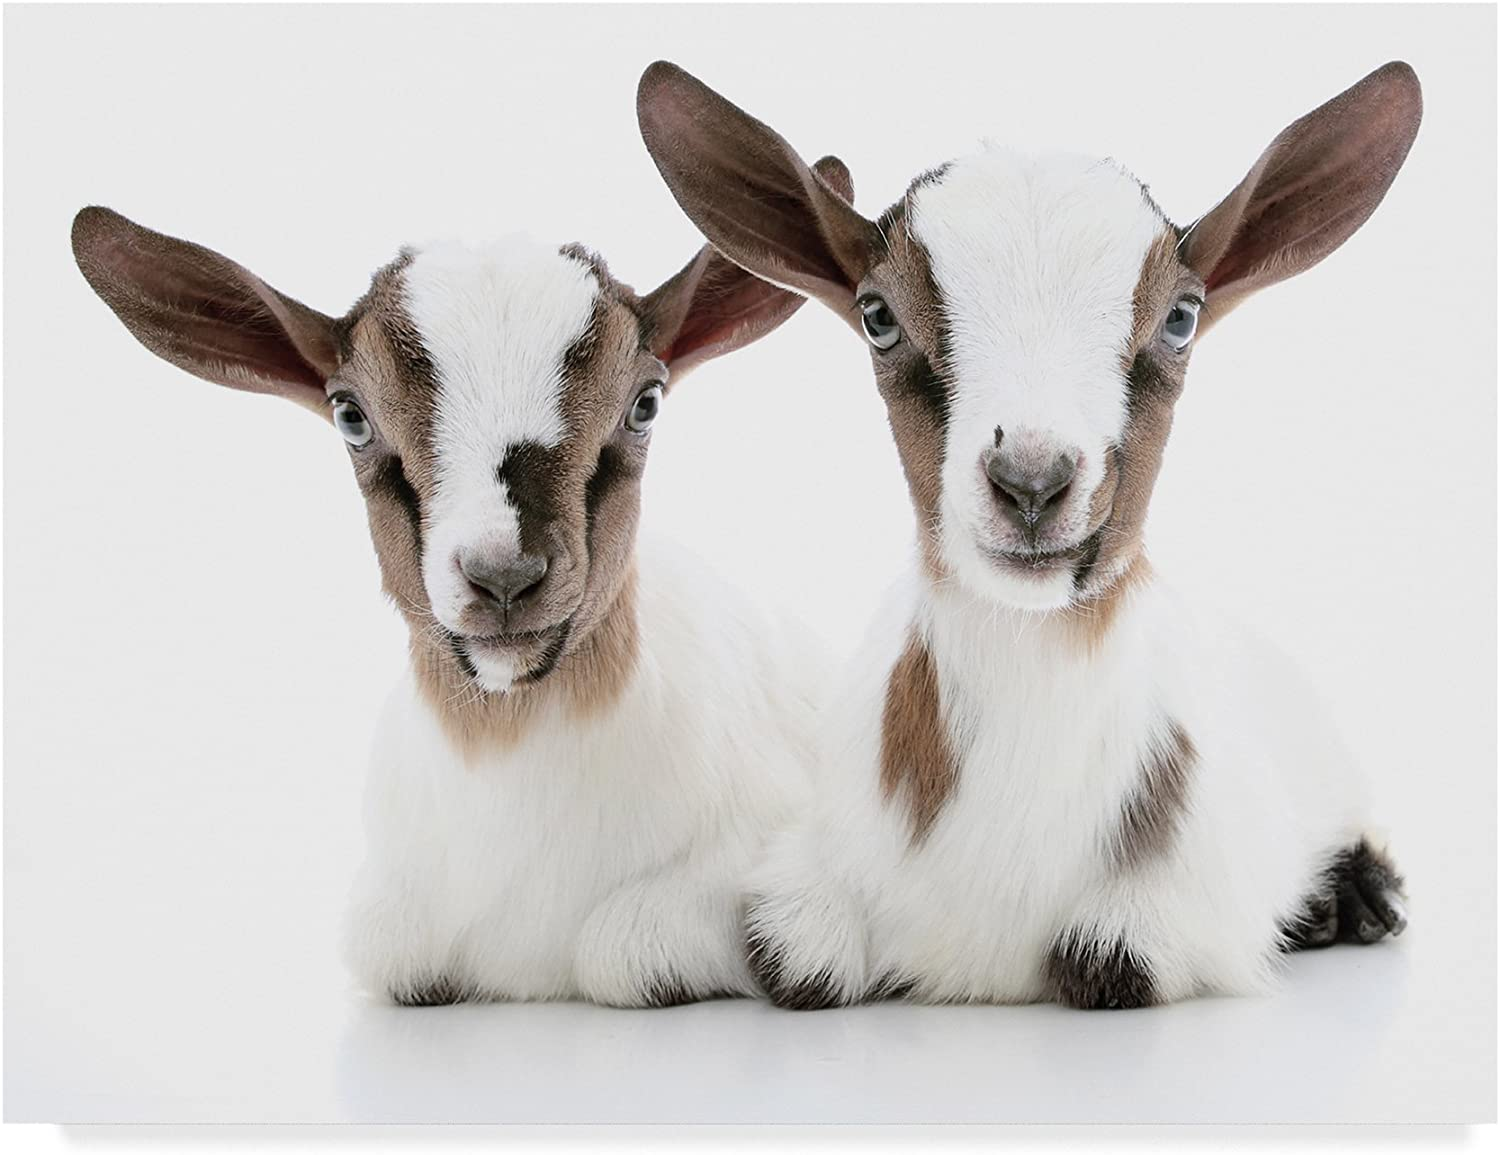 Baby Goats by Andrea Mascitti Puppies, 14x19Inch